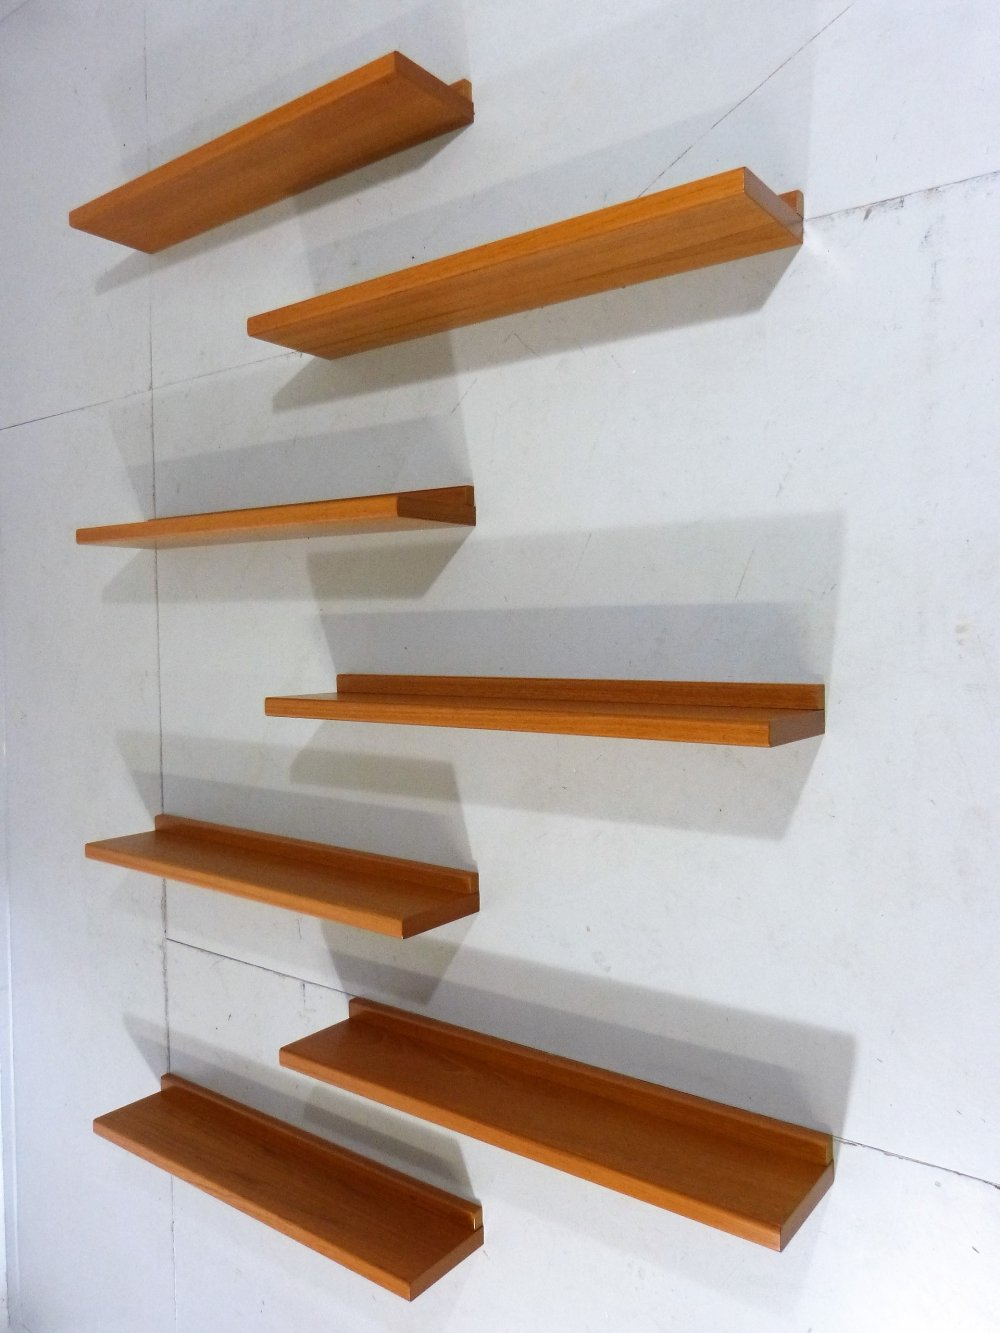 Teak wall- book shelves with blind wall fastening, 1960